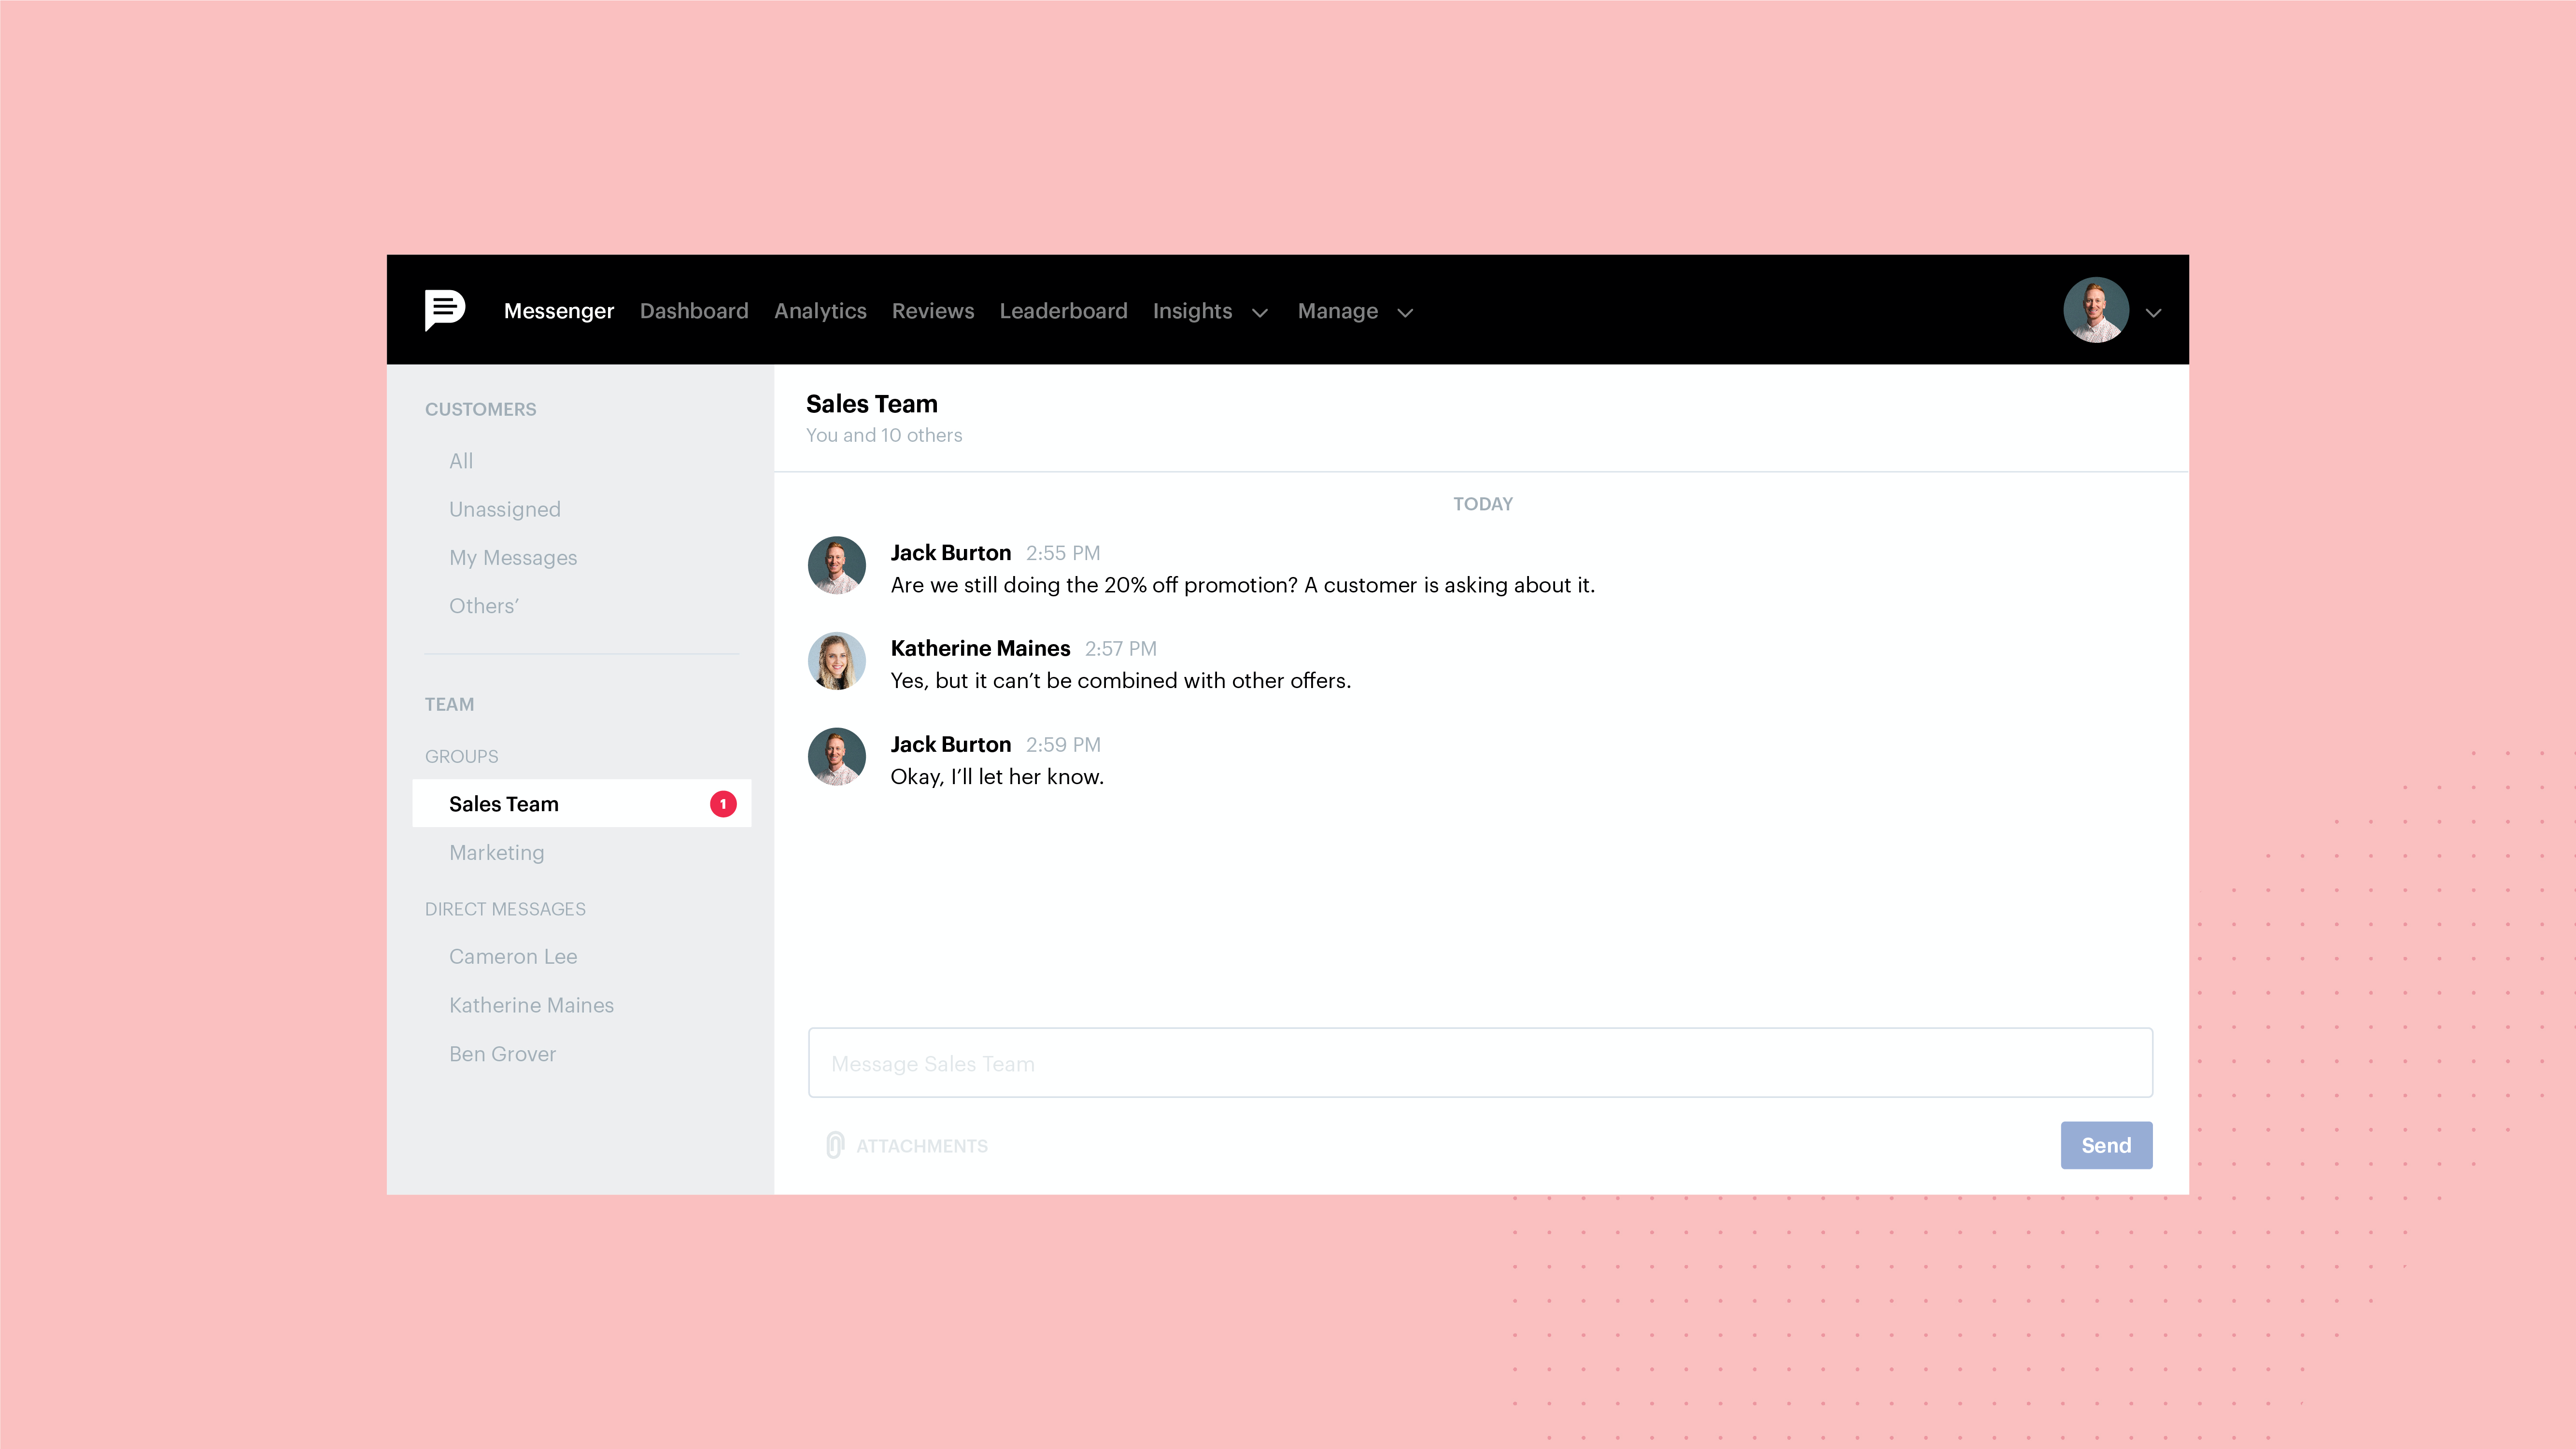 Podium Teamchat means private, secure team discussions to make sure you are all on the same page, can easily manage customer information and keep morale high.